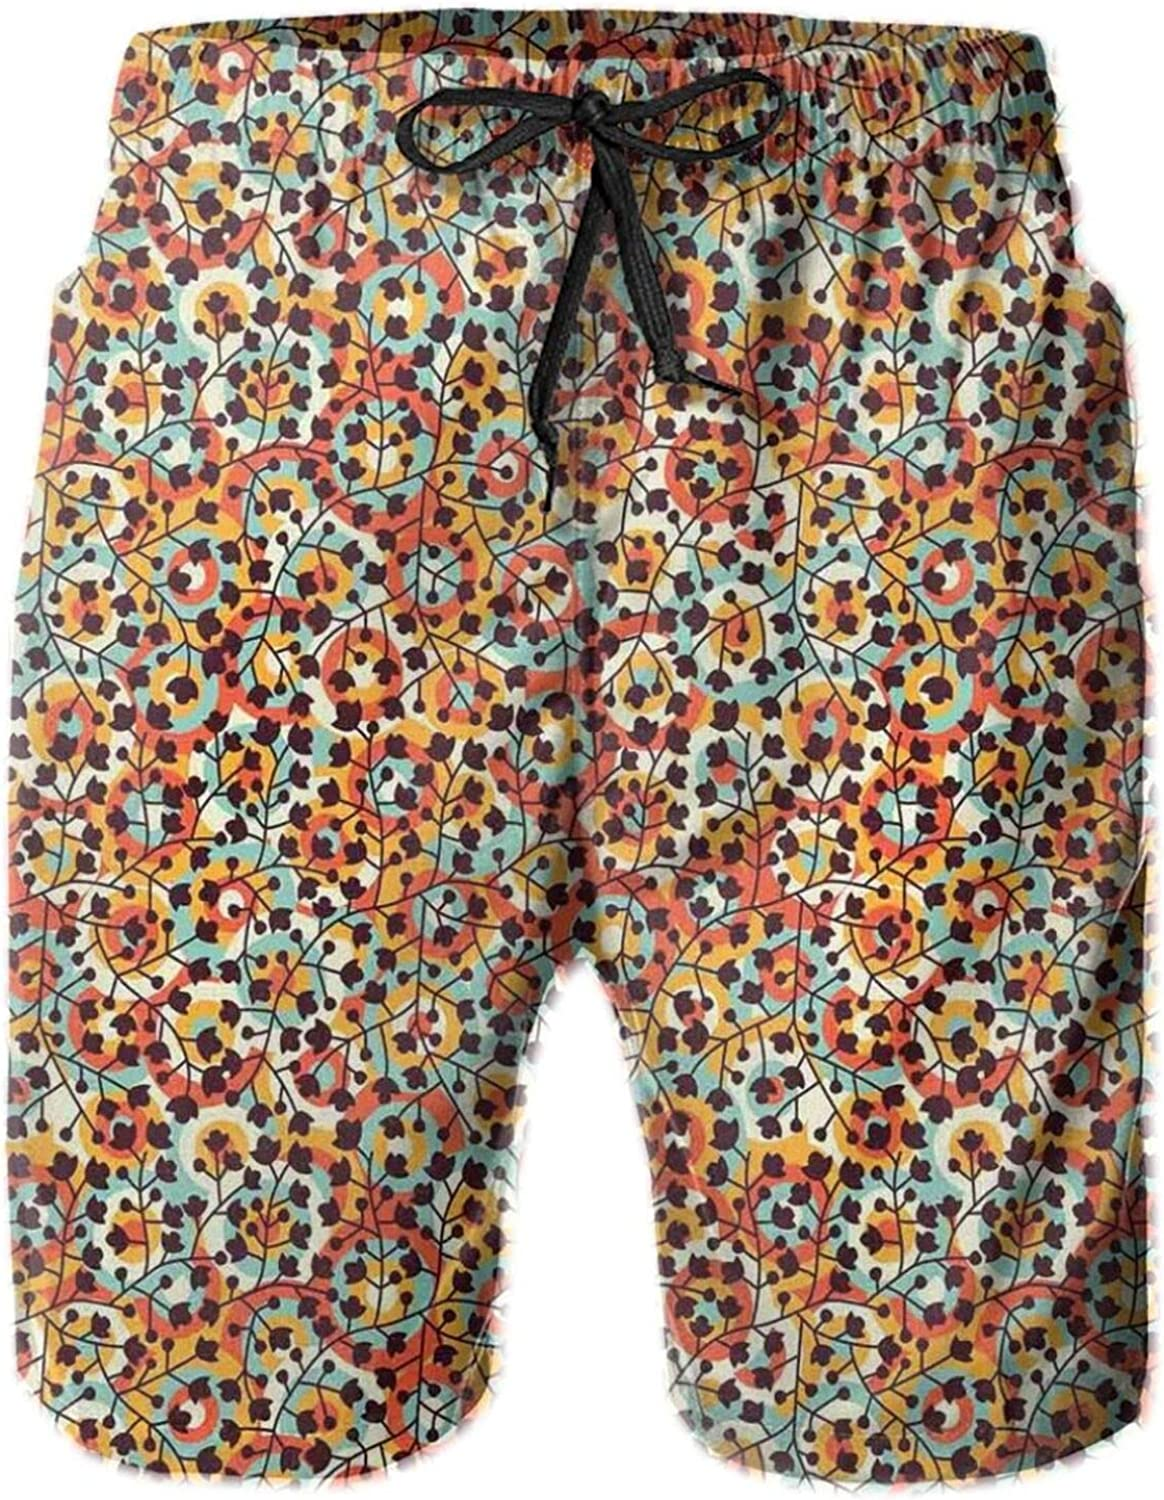 Nature Inspired Scroll Pattern Buds On an Abstract Background with Colorful Circles Drawstring Waist Beach Shorts for Men Swim Trucks Board Shorts with Mesh Lining,L